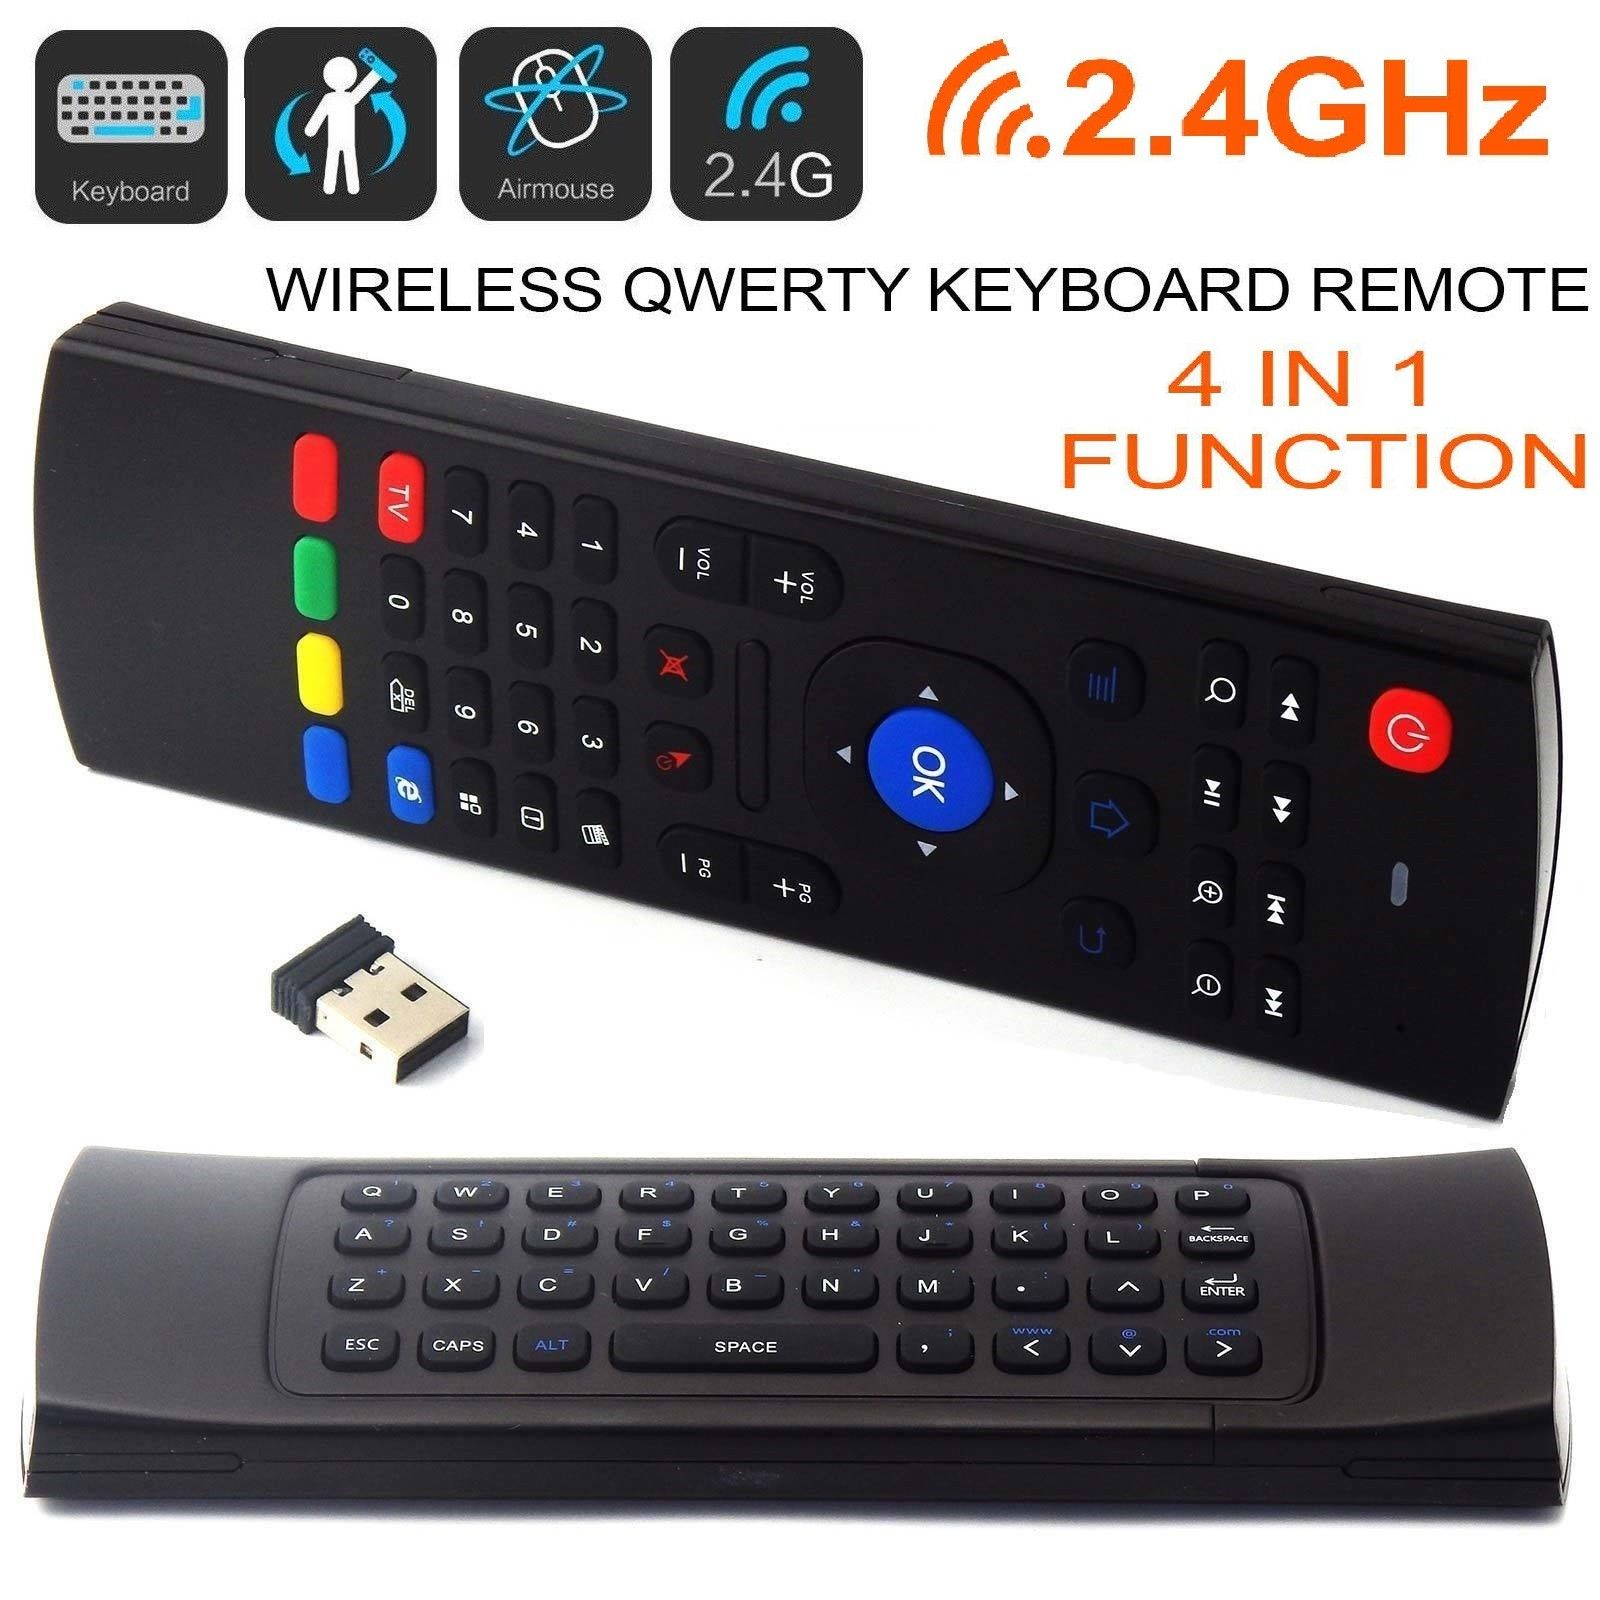 2.4GHz Plastic Wireless Android TV Box Remote Control Keyboards Air Mouse